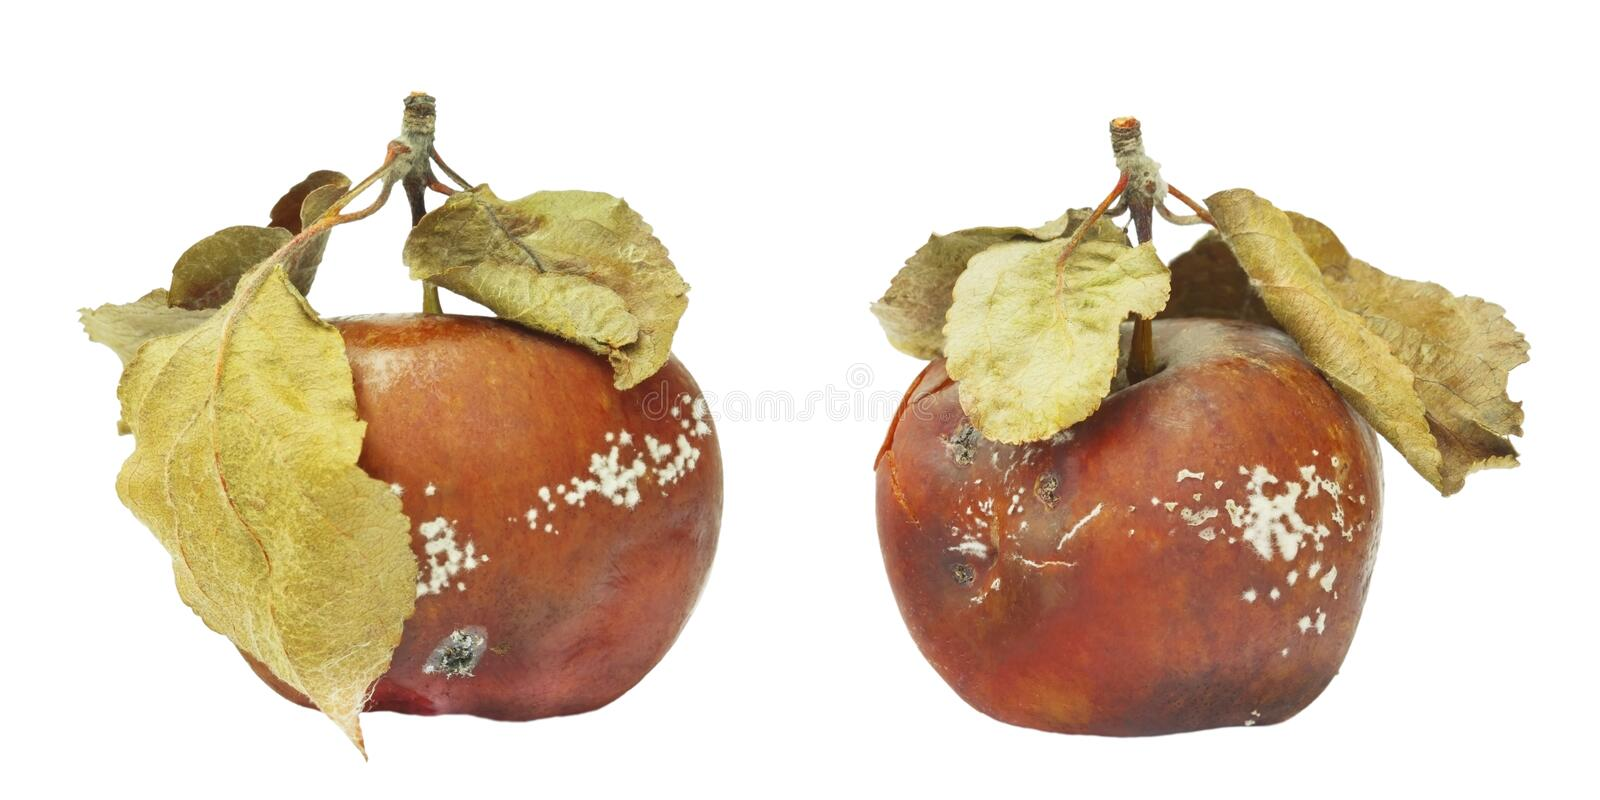 Set of mold growing on the old apple. Isolated on white background photo. Food contamination, bad spoiled disgusting rotten organi. C apple. Messthetics concept royalty free stock photo